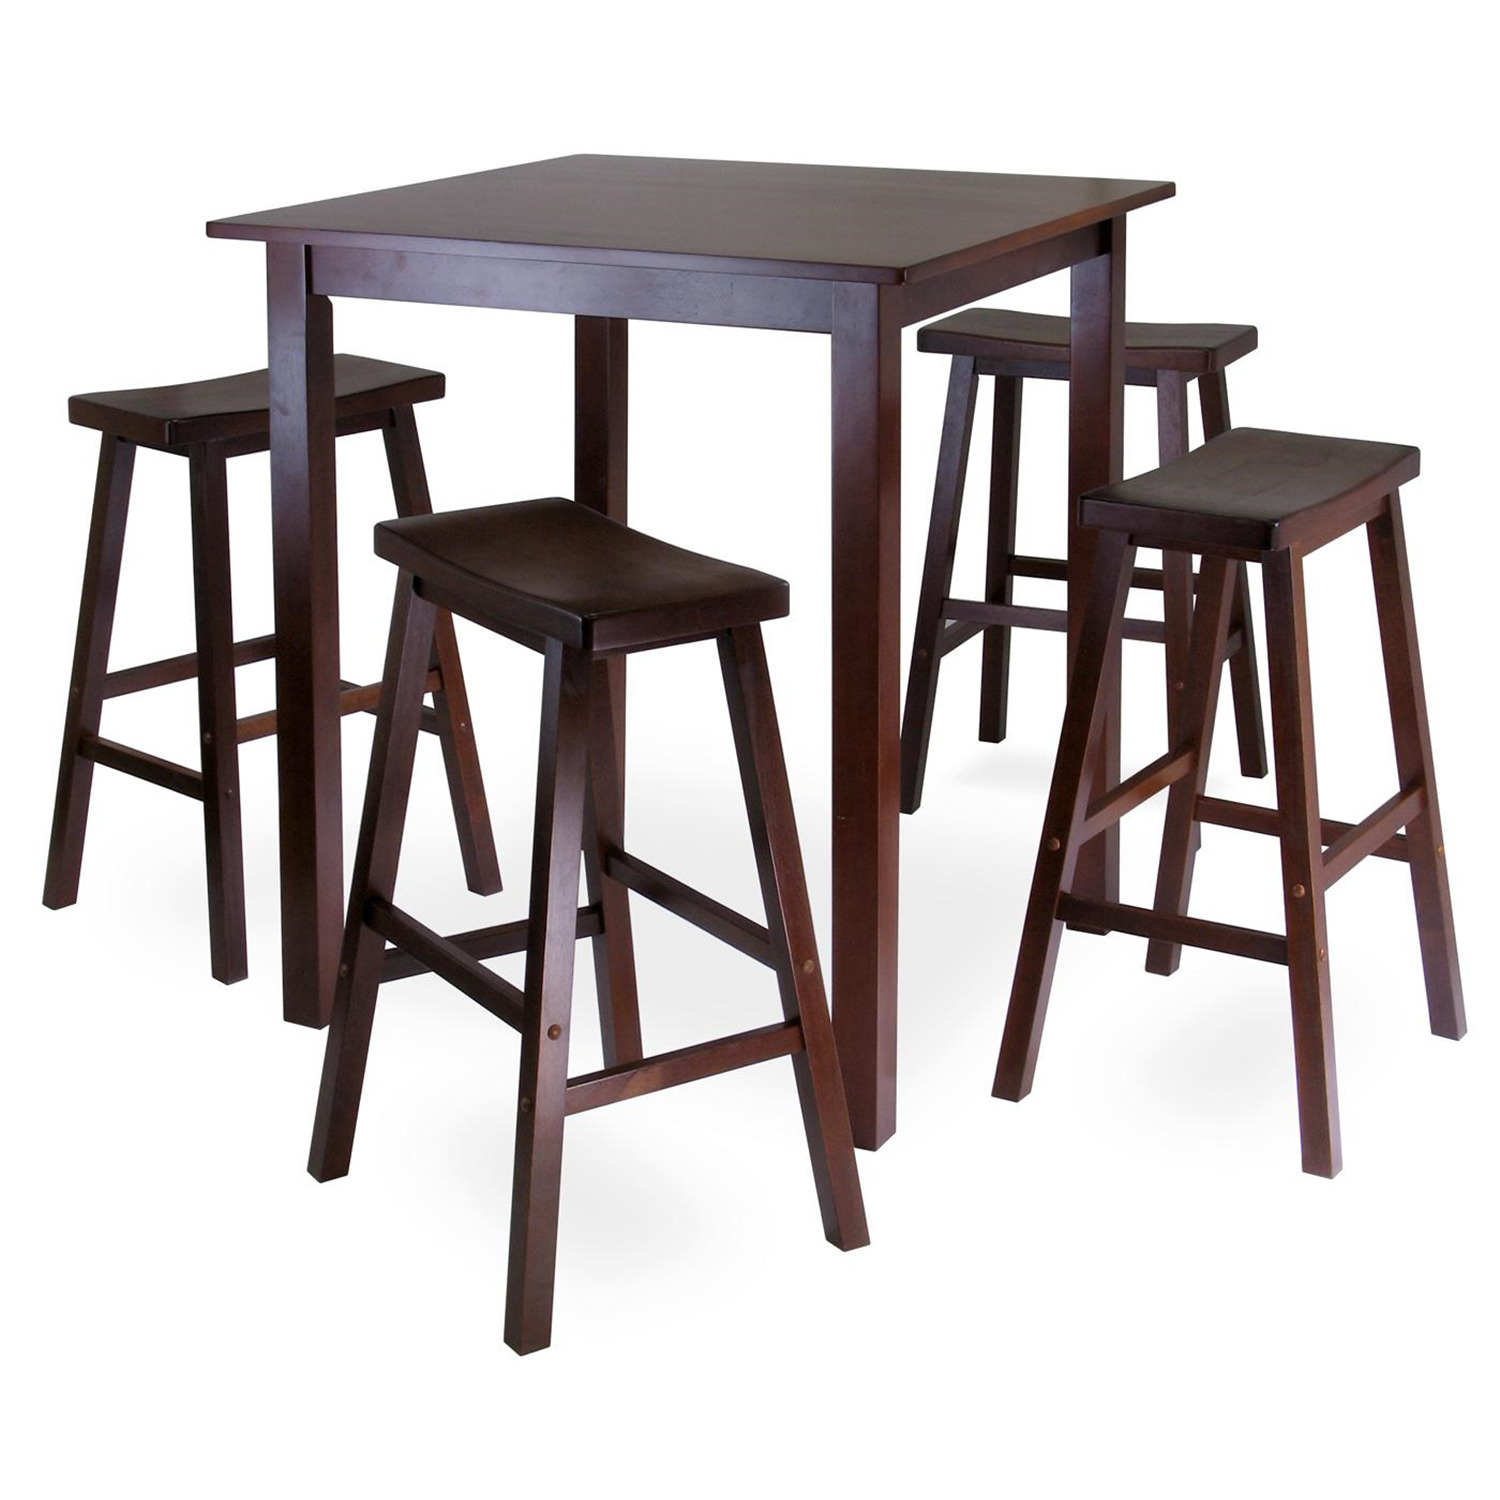 Winsome Parkland 5pc Square High Pub Table Set With 4 Saddle Seat